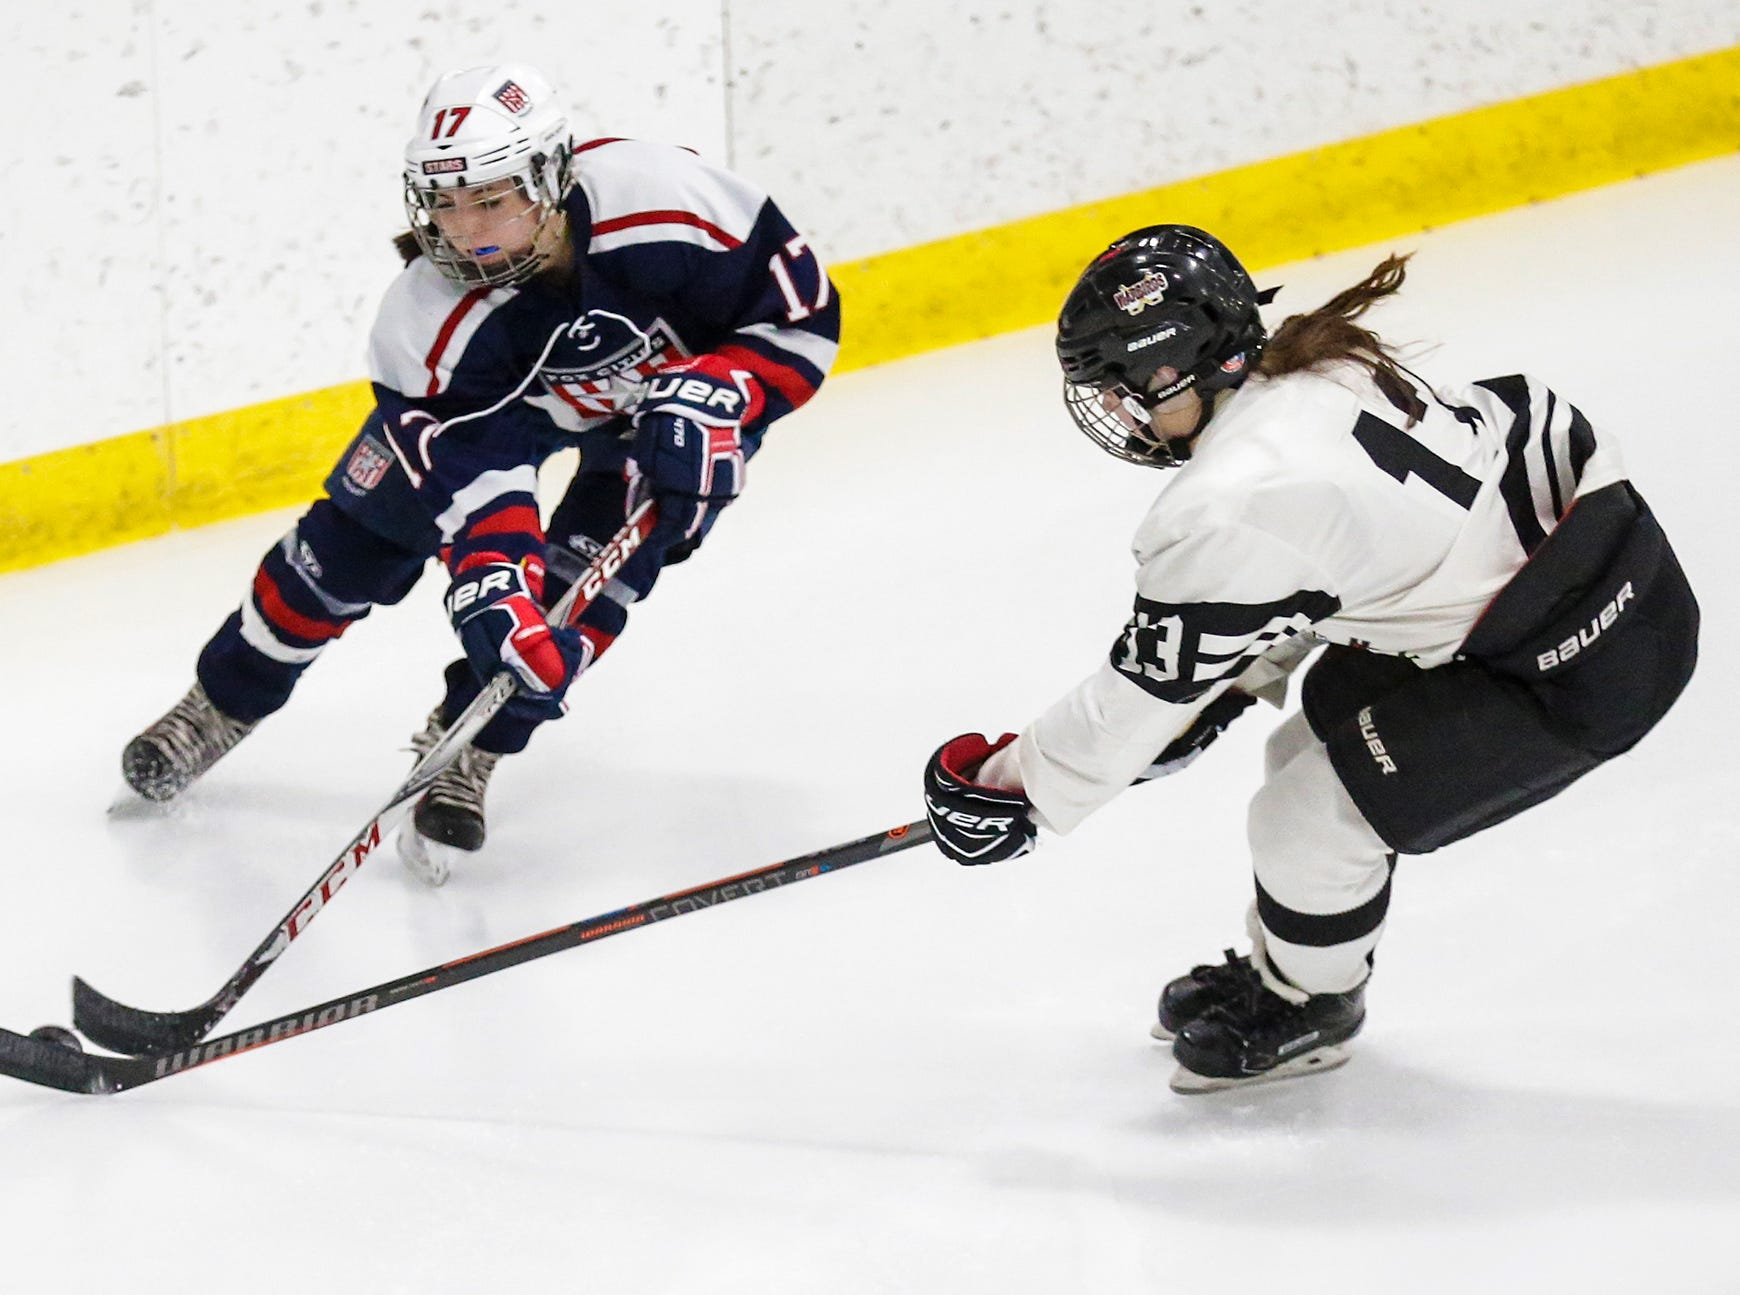 Fox Cities Stars girls hockey's Morgan Treml (17) and Beaver Dam Alliance's Maike Zipp (13) battle for the puck Friday, February 22, 2019 during their WIAA sectional final game in Fond du Lac. Fox Cities Stars won the game 5-2 and will advance to state. Doug Raflik/USA TODAY NETWORK-Wisconsin